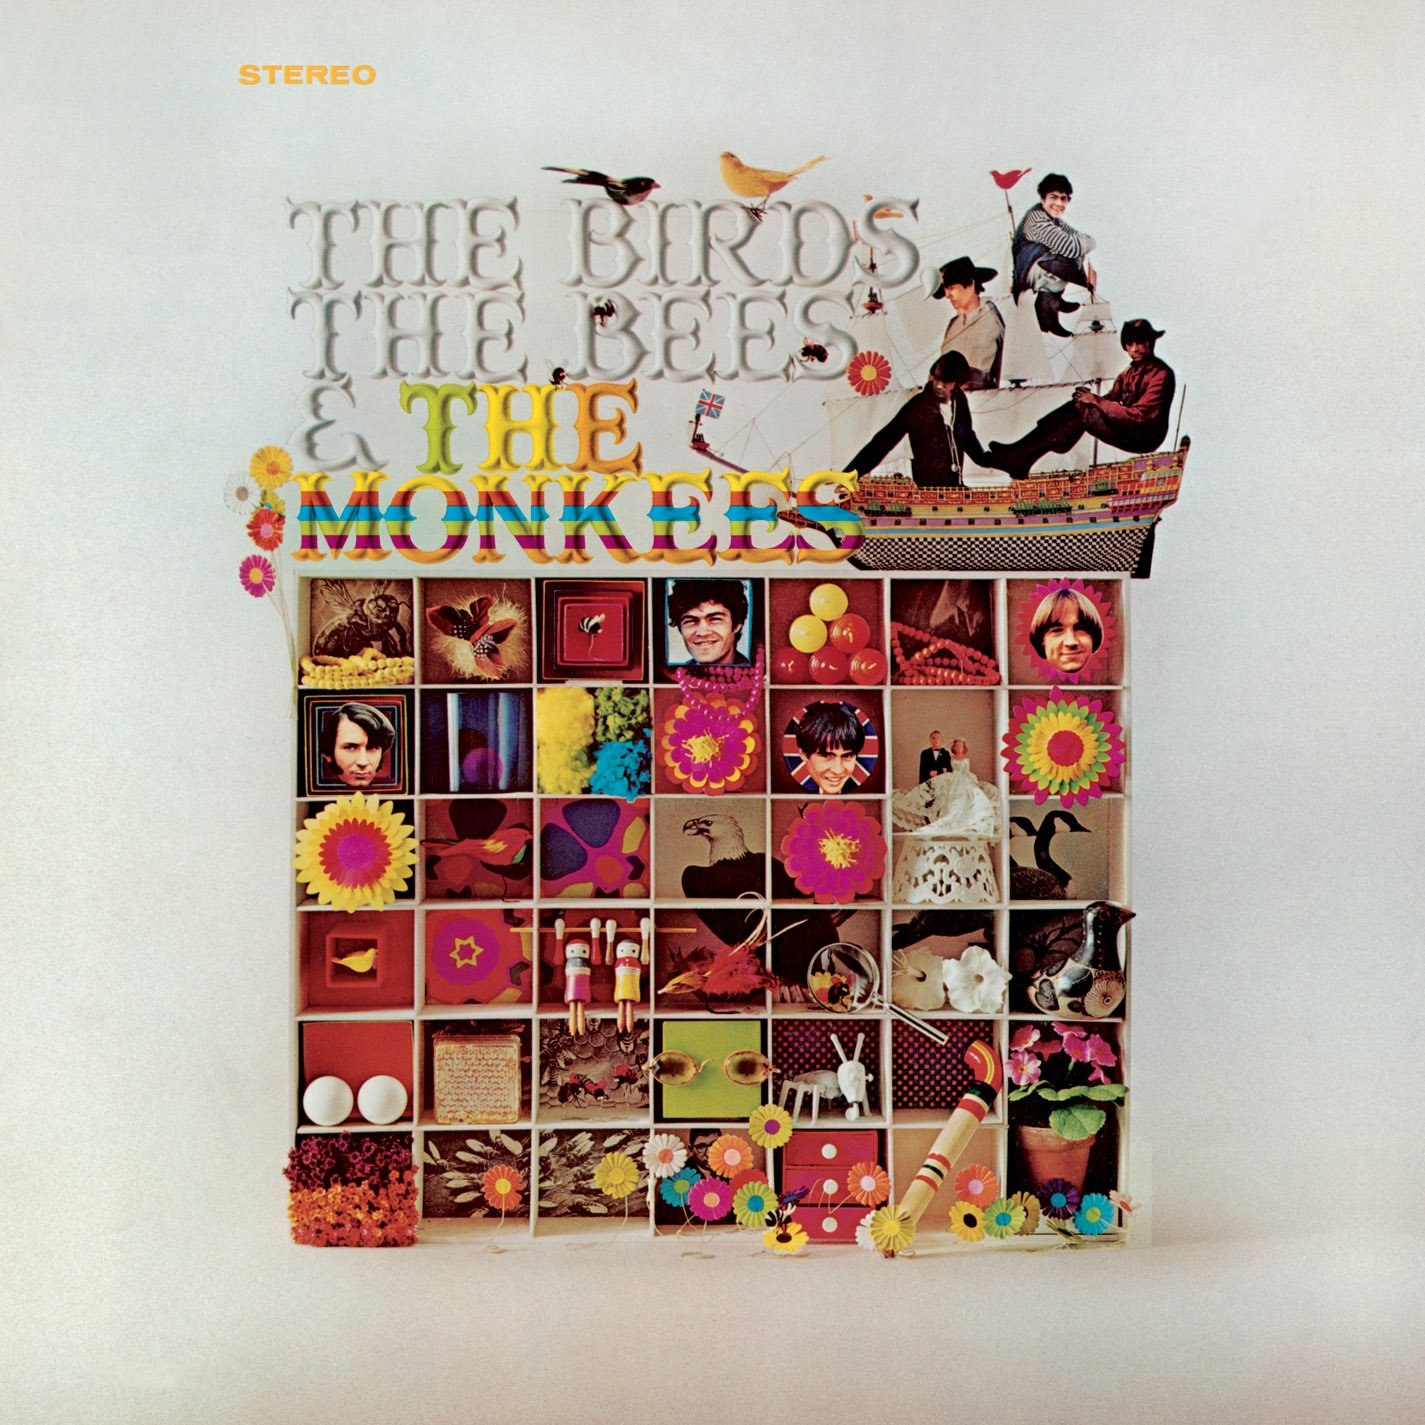 The Birds, The Bees & The Monkees, The Monkees